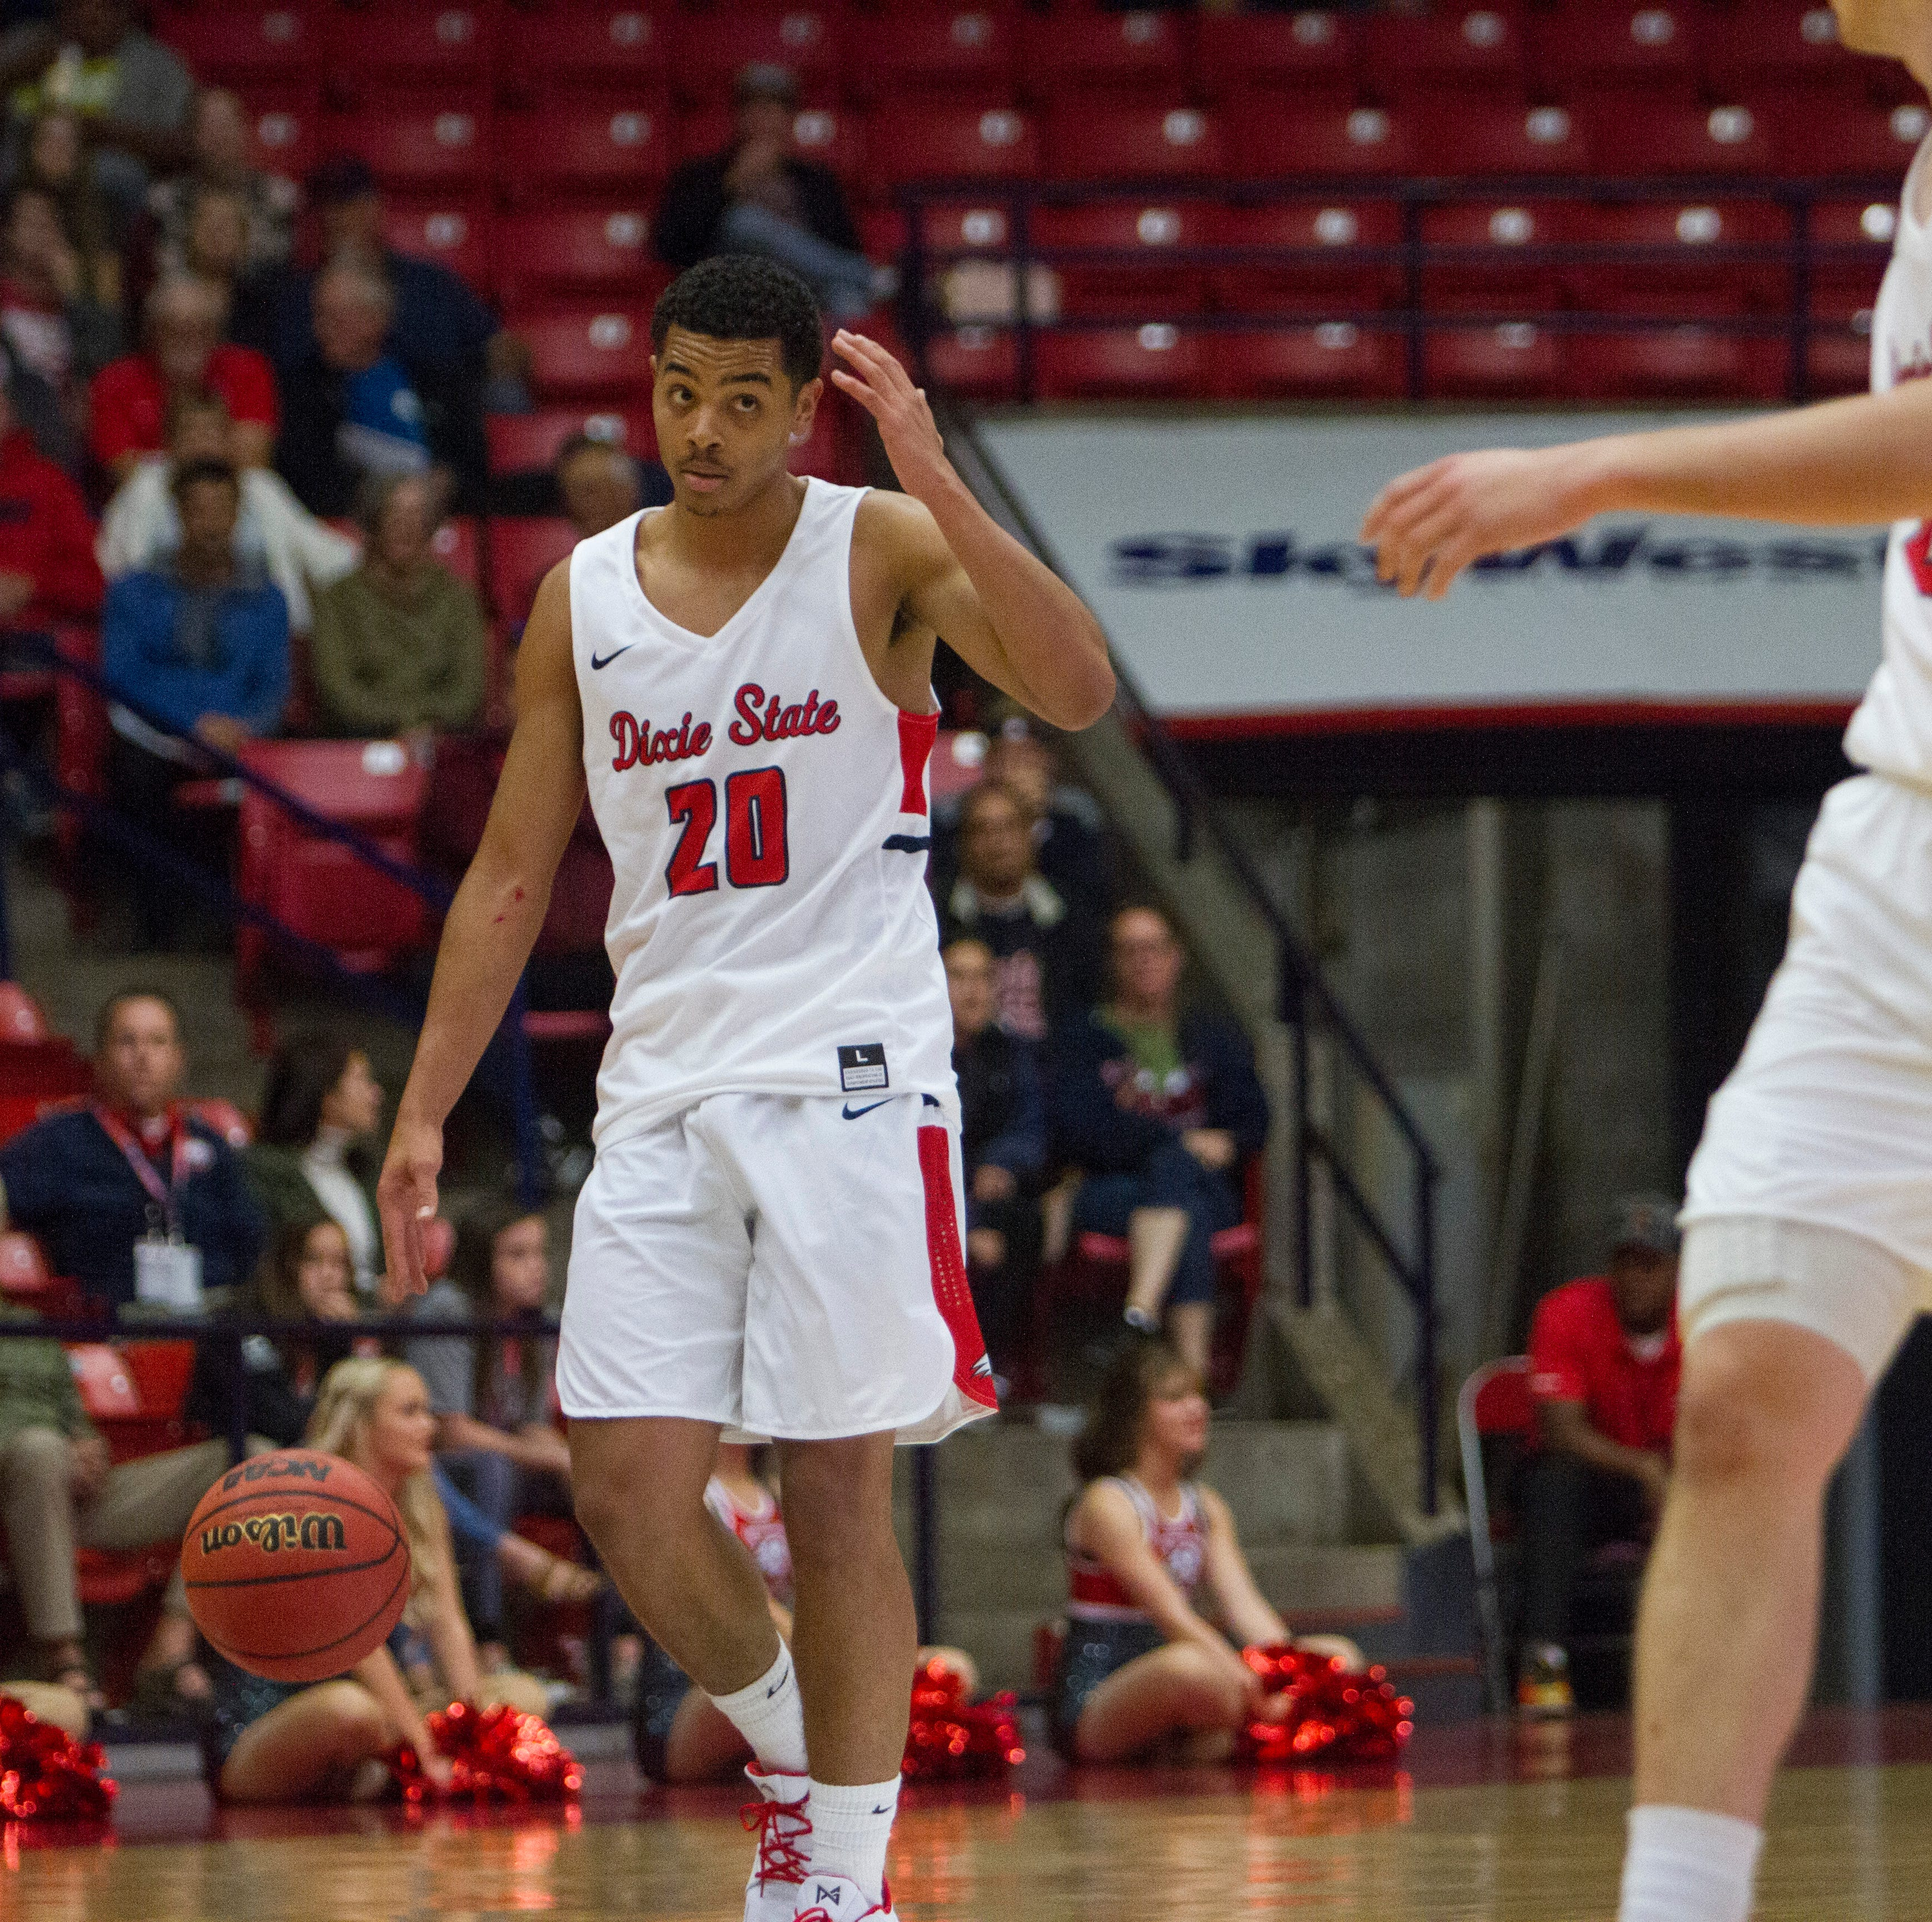 Dixie State drops close road game to Westminster